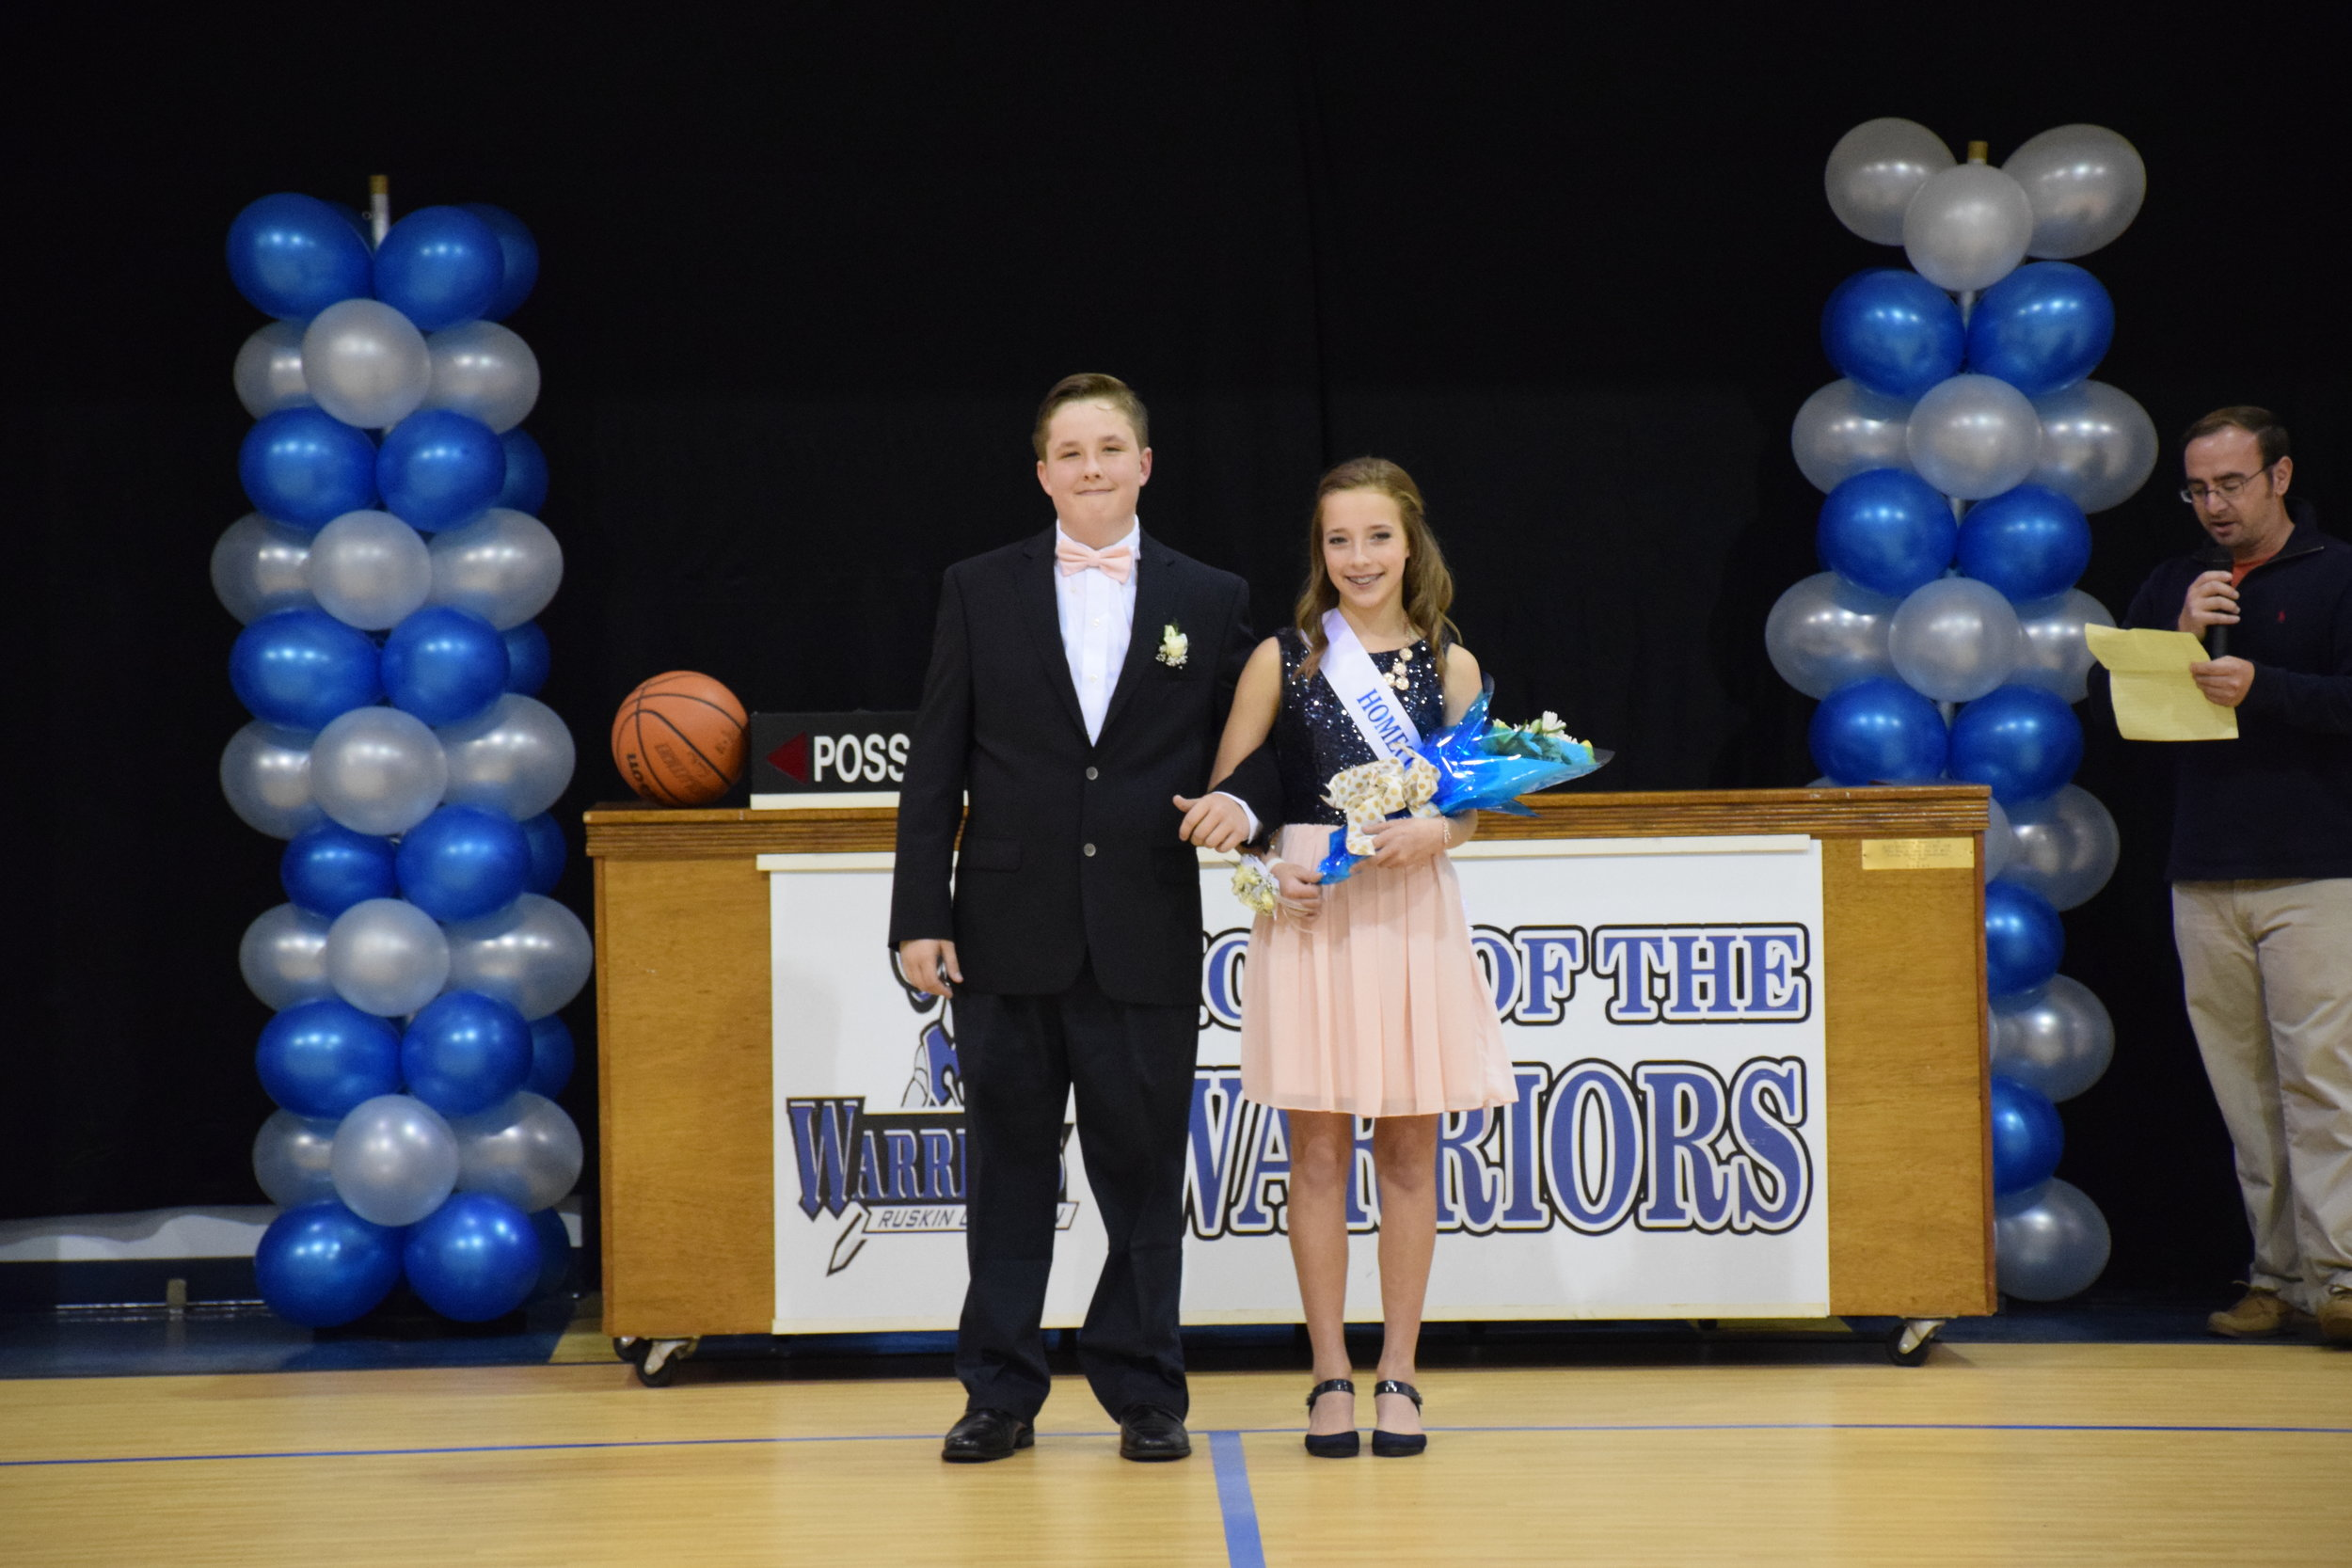 Trent Lewis & Riley Sorge - 8th Grade Representatives